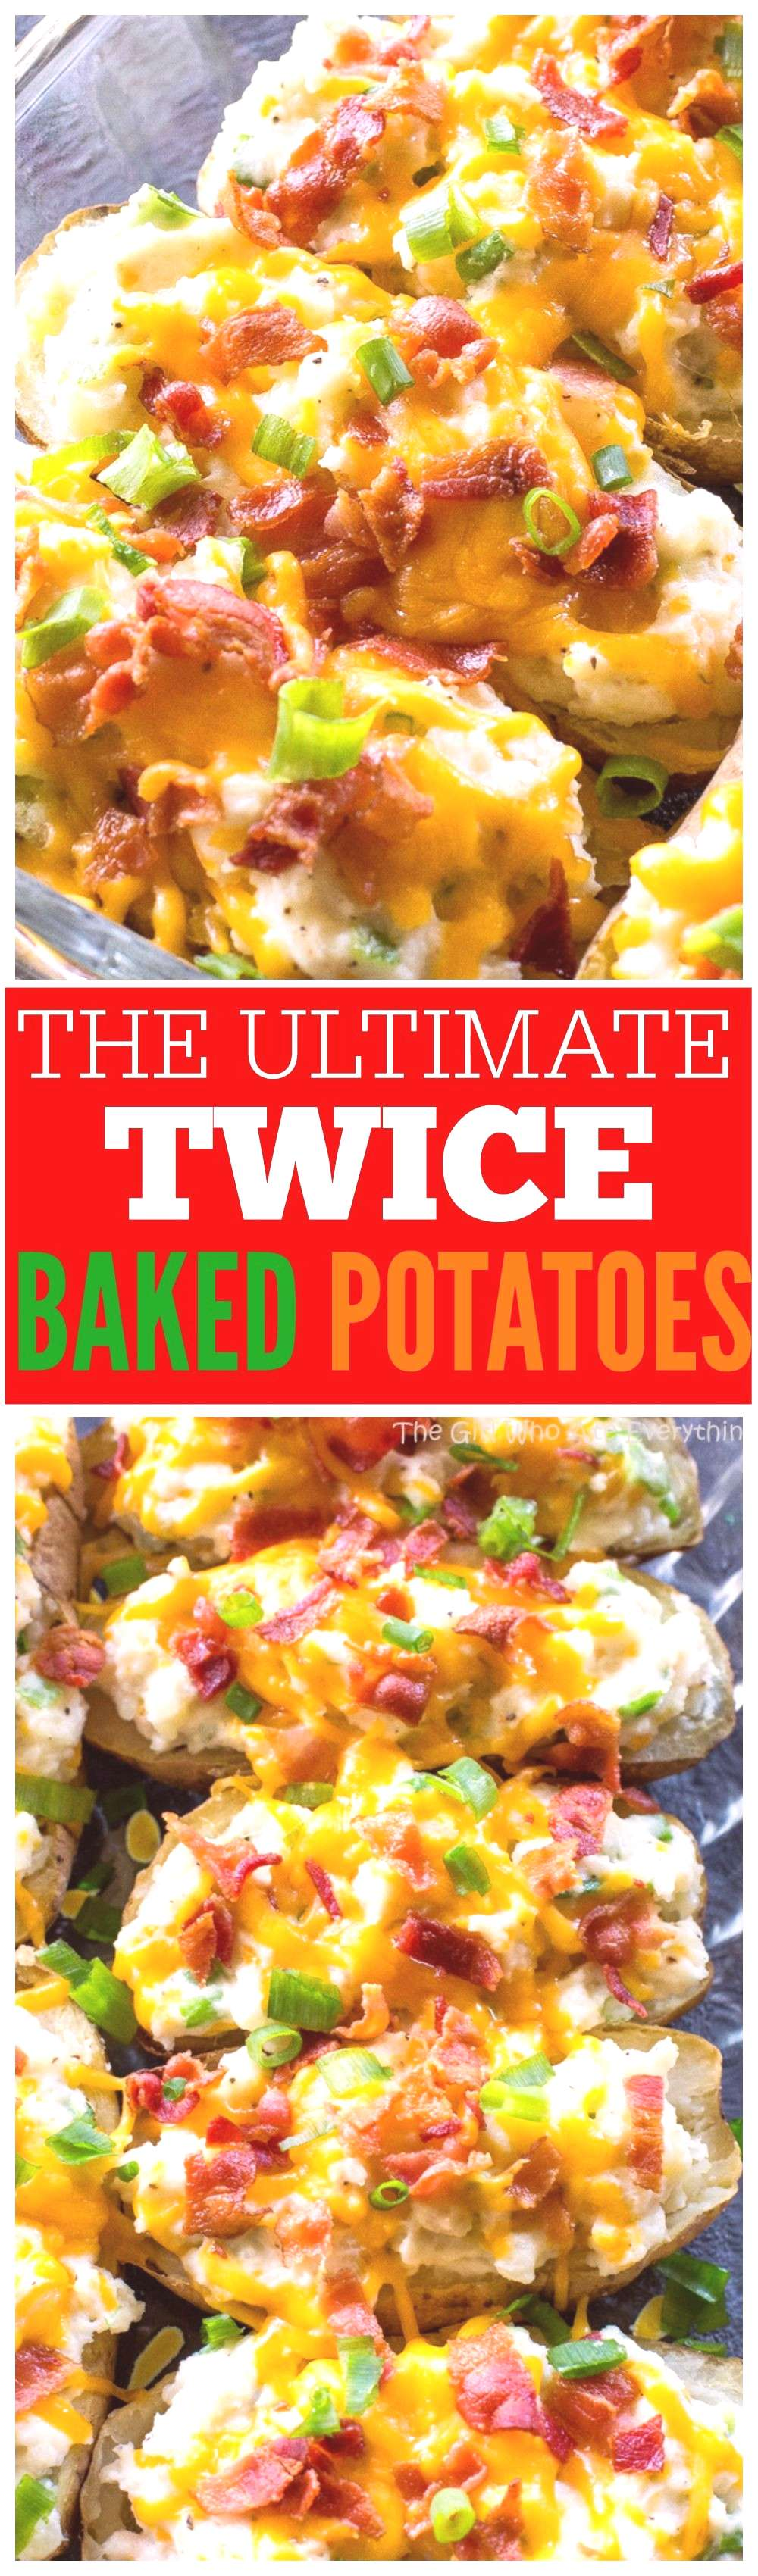 The Ultimate Twice Baked Potatoes - you can go wrong with this side dish. the-girl-who-ate-